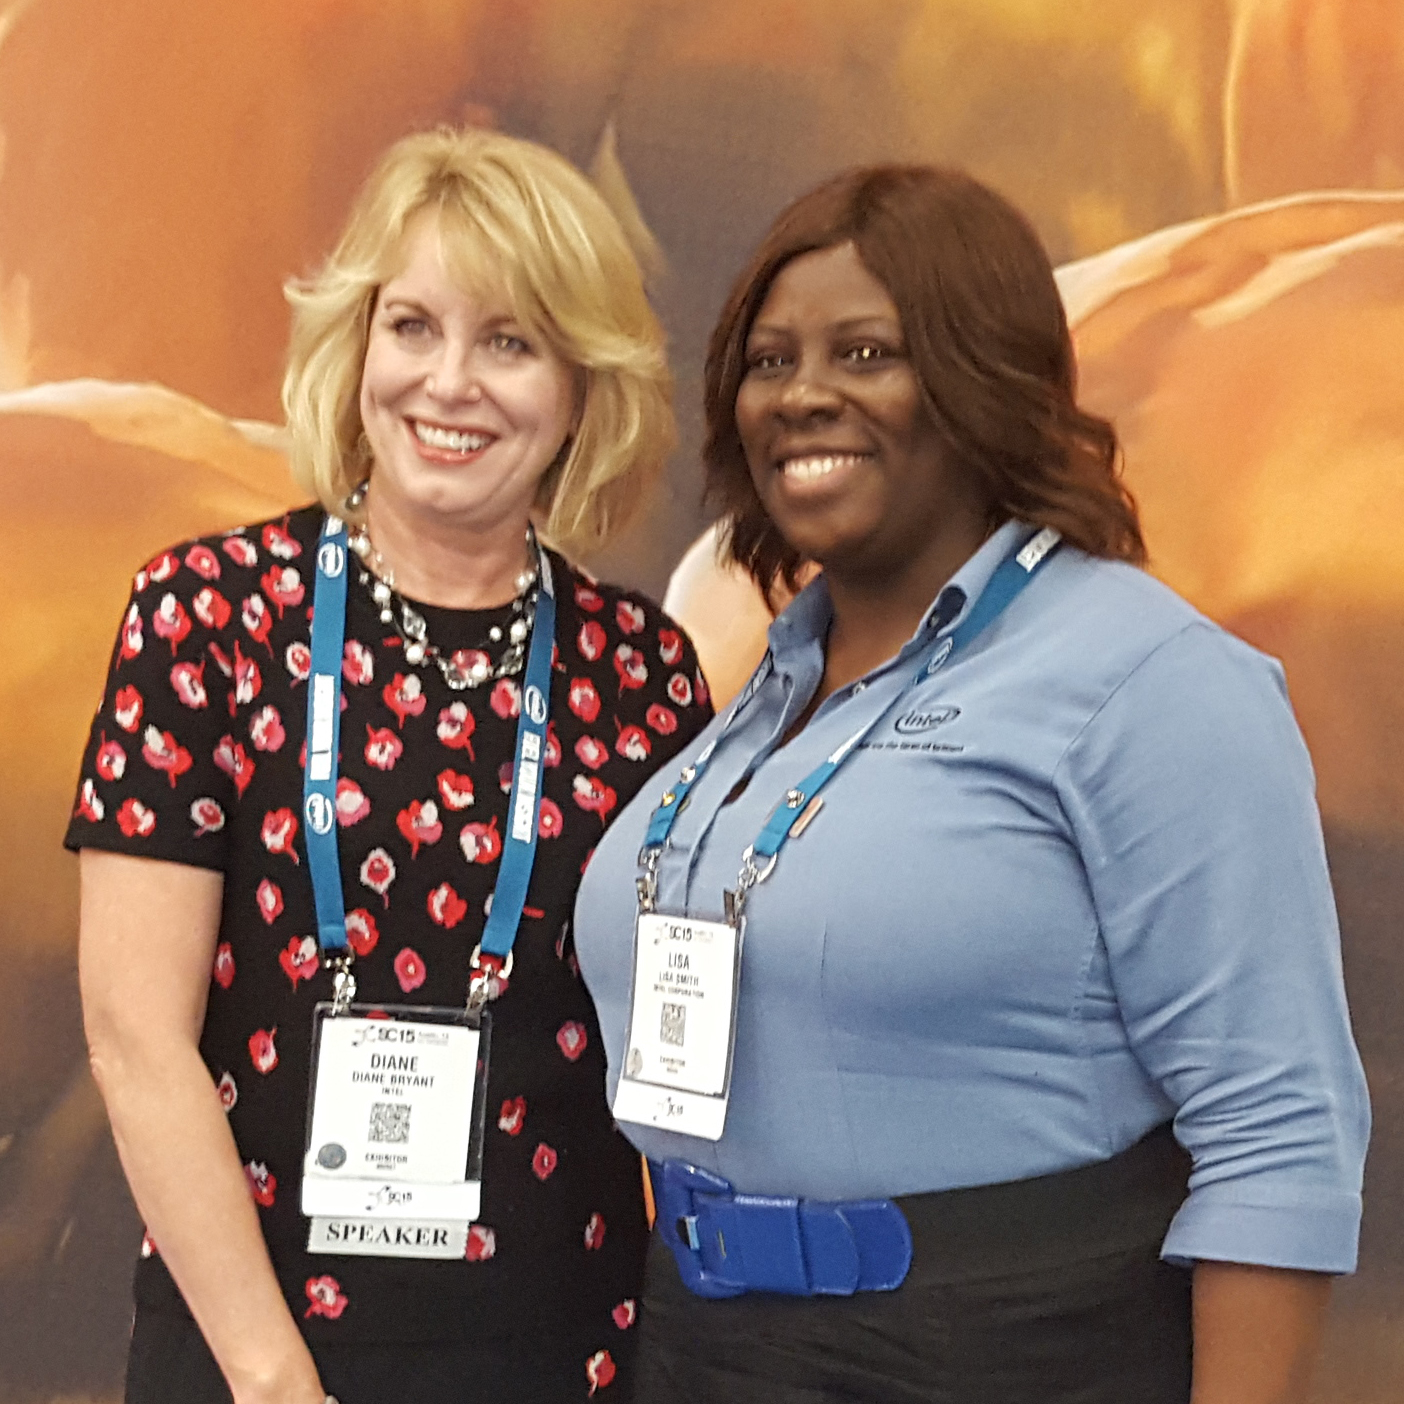 lisa-smith-and-diane-bryant-re-croped.jpg